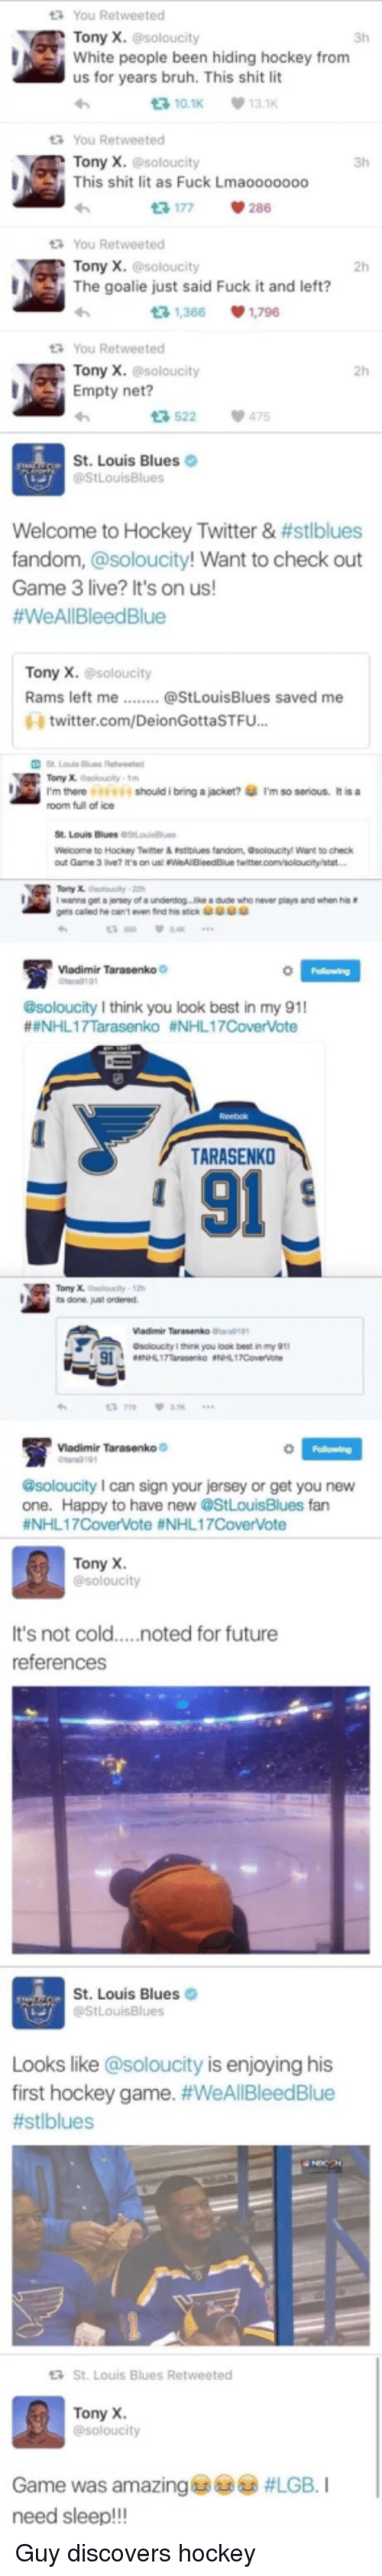 Bruh, Future, and Hockey: You Retweeted  Tony X. @soloucity  3h  White people been hiding hockey from  us for years bruh. This shit lit  다10.1K  131K  t You Retweeted  Tony X. @soloucity  This shit lit as Fuck Lmaooooooo  3h  다 177  286  You Retweeted  Tony x. esoloucity  2h  The goalie just said Fuck it and left?  다 1,366  ·1,296  You Retweeted  Tony X. esoloucity  Empty net?  2h  3 522 475  St. Louis Blues  Welcome to Hockey Twitter & #stiblues  fandom, @soloucity! Want to check out  Game 3 live? It's on us!  #WeAll Bleed Blue  Game 3 live uiyd Want  Tony X. @soloucity  twitter.com/DeionGottaSTFU...  |  v should ibnng a jackot?ホI'm so senou黍it is a  1.rm thoro?  room full of ice  St. Louis Blues loui  ne to Hockey Temer &轗tues tandorn, Gsol ucty! Walt to check  遮  warra a-sey of a underdog . lke dide who never plays and when his #  gets caled he cant even firdhi' stick傘傘ホ傘  霅  Vladimir Tarasenko  r919  @soloucity I think you look best in my 91  #eNHL 1 7Tarasenko #NHL 1 7CoverVote  TARASENKO  91  VMadimir Tarasenko 9  soloucity I hink you look best in my 91  NHL17TarasenkO NL17Covervoe  Madimir Tarasenko  191  @soloucity I can sign your jersey or get you new  one. Happy to have new @StLouisBlues fan  #NHLI 7CoverVote #NHL 17CoverVote  Tony X  It's not cold...noted for future  references  St. Louis Blues  Looks like @soloucity is enjoying his  first hockey game. #WeAllBleedBlue  #stiblues  St. Louis Blues Retweeted  Tony X  Game was amazing 6굶  need sleep!!!  @9 #LGB. I  Guy discovers hockey